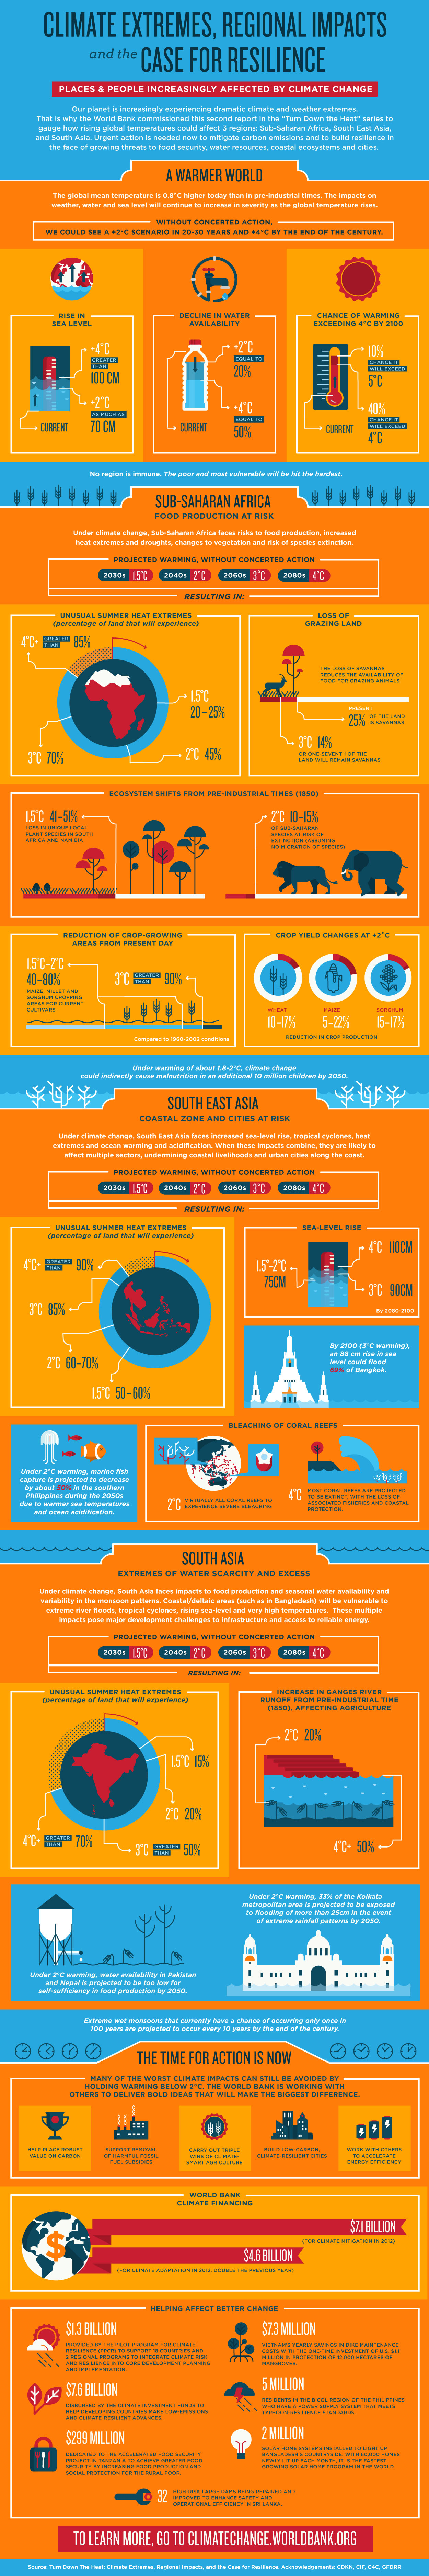 Image result for global warming infographic 2015